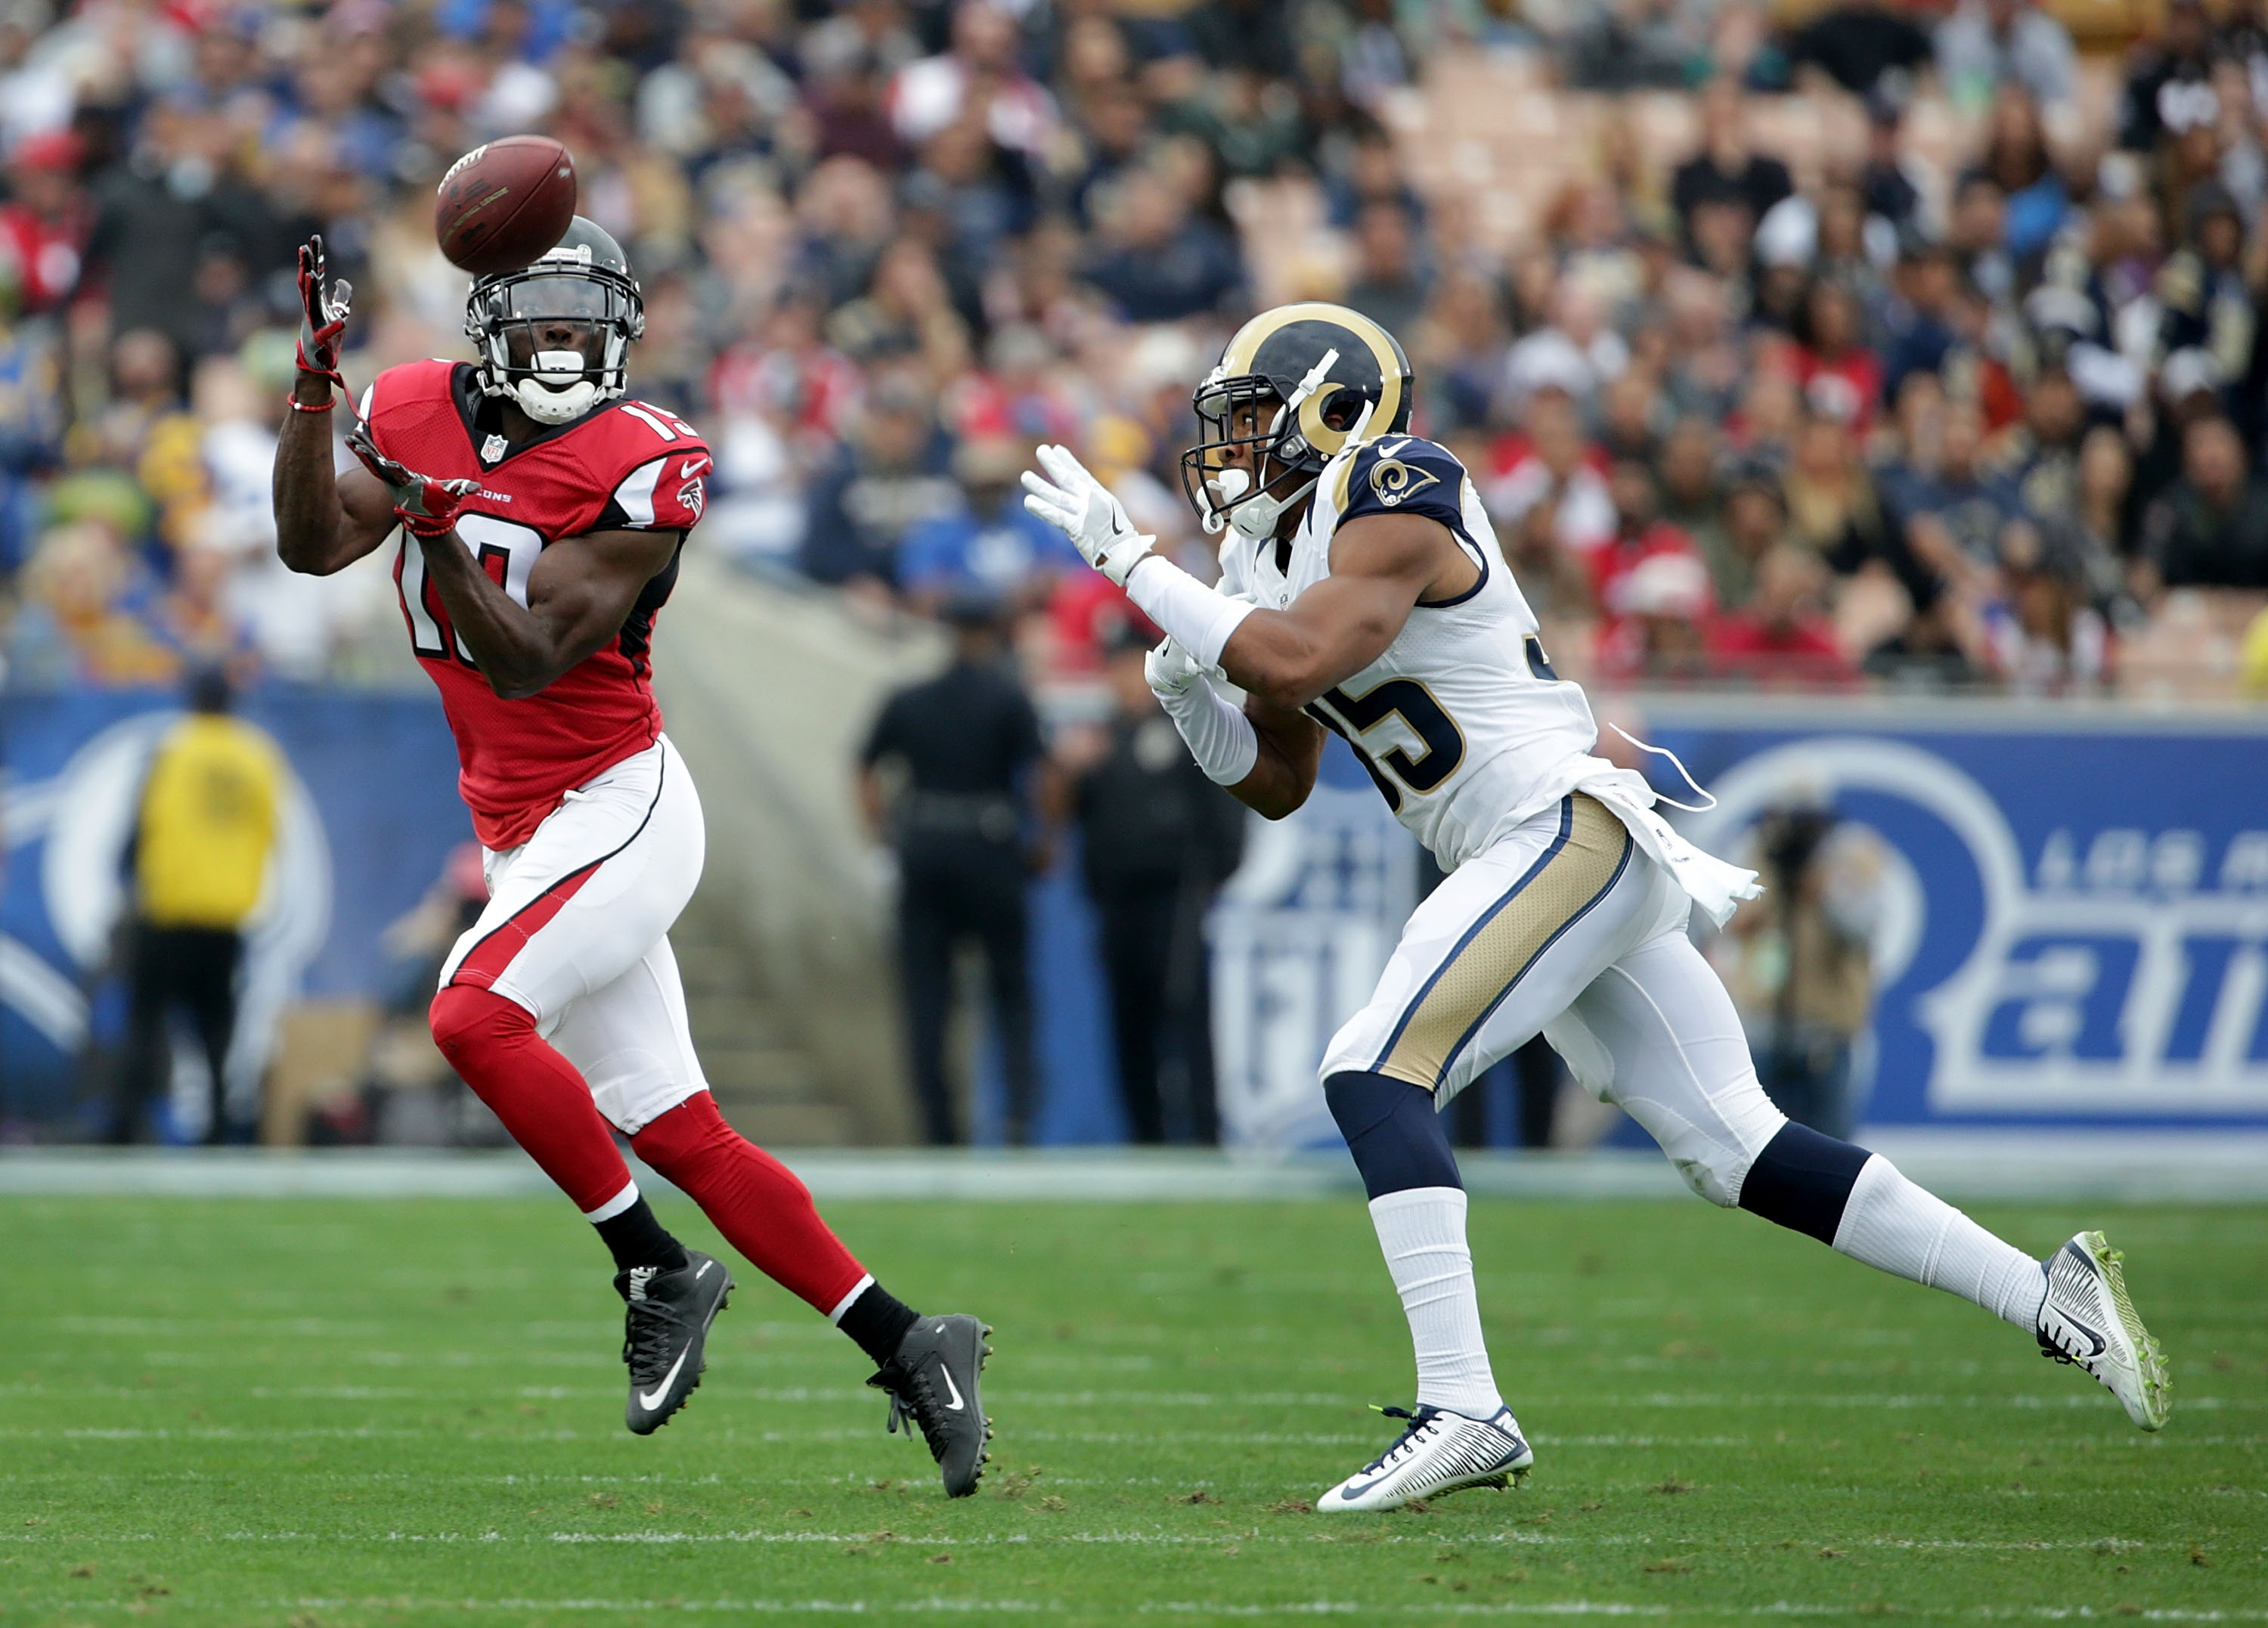 629176010-atlanta-falcons-v-los-angeles-rams.jpg